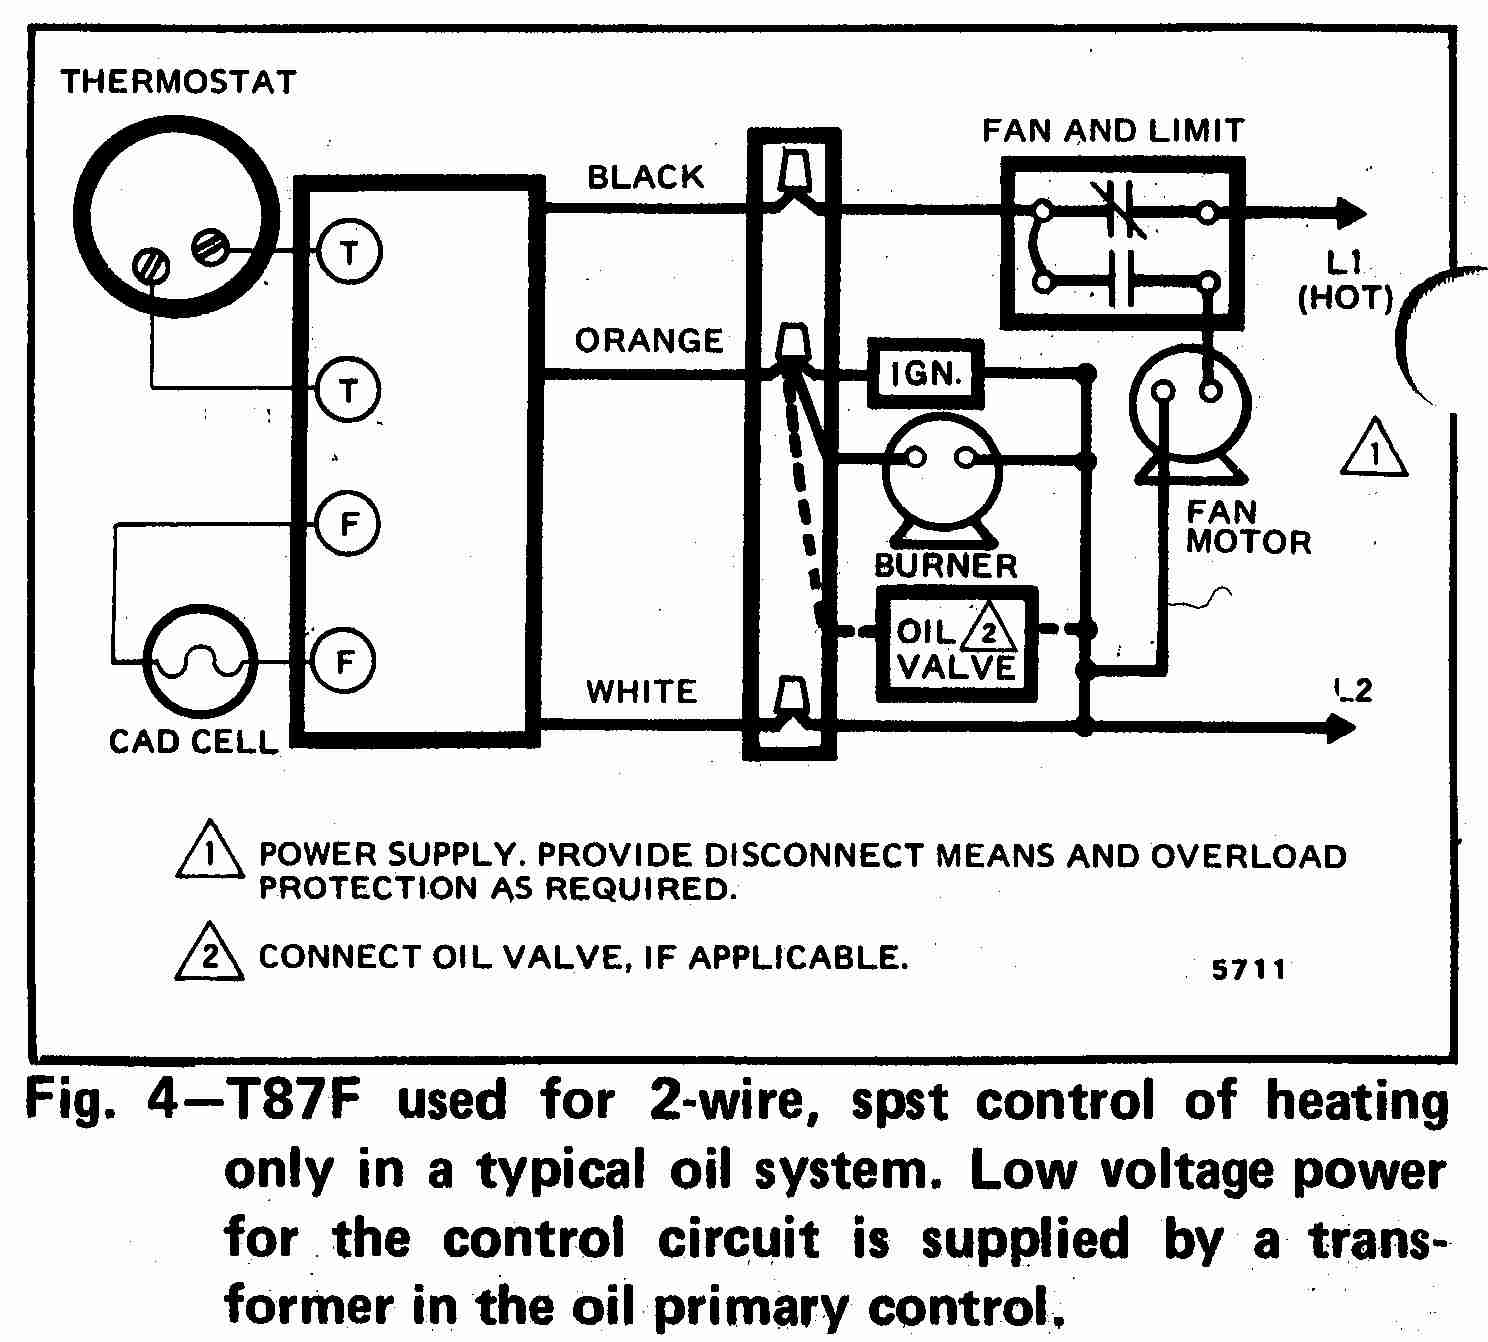 TT_T87F_0002_2W_DJF room thermostat wiring diagrams for hvac systems lennox wiring diagram at creativeand.co